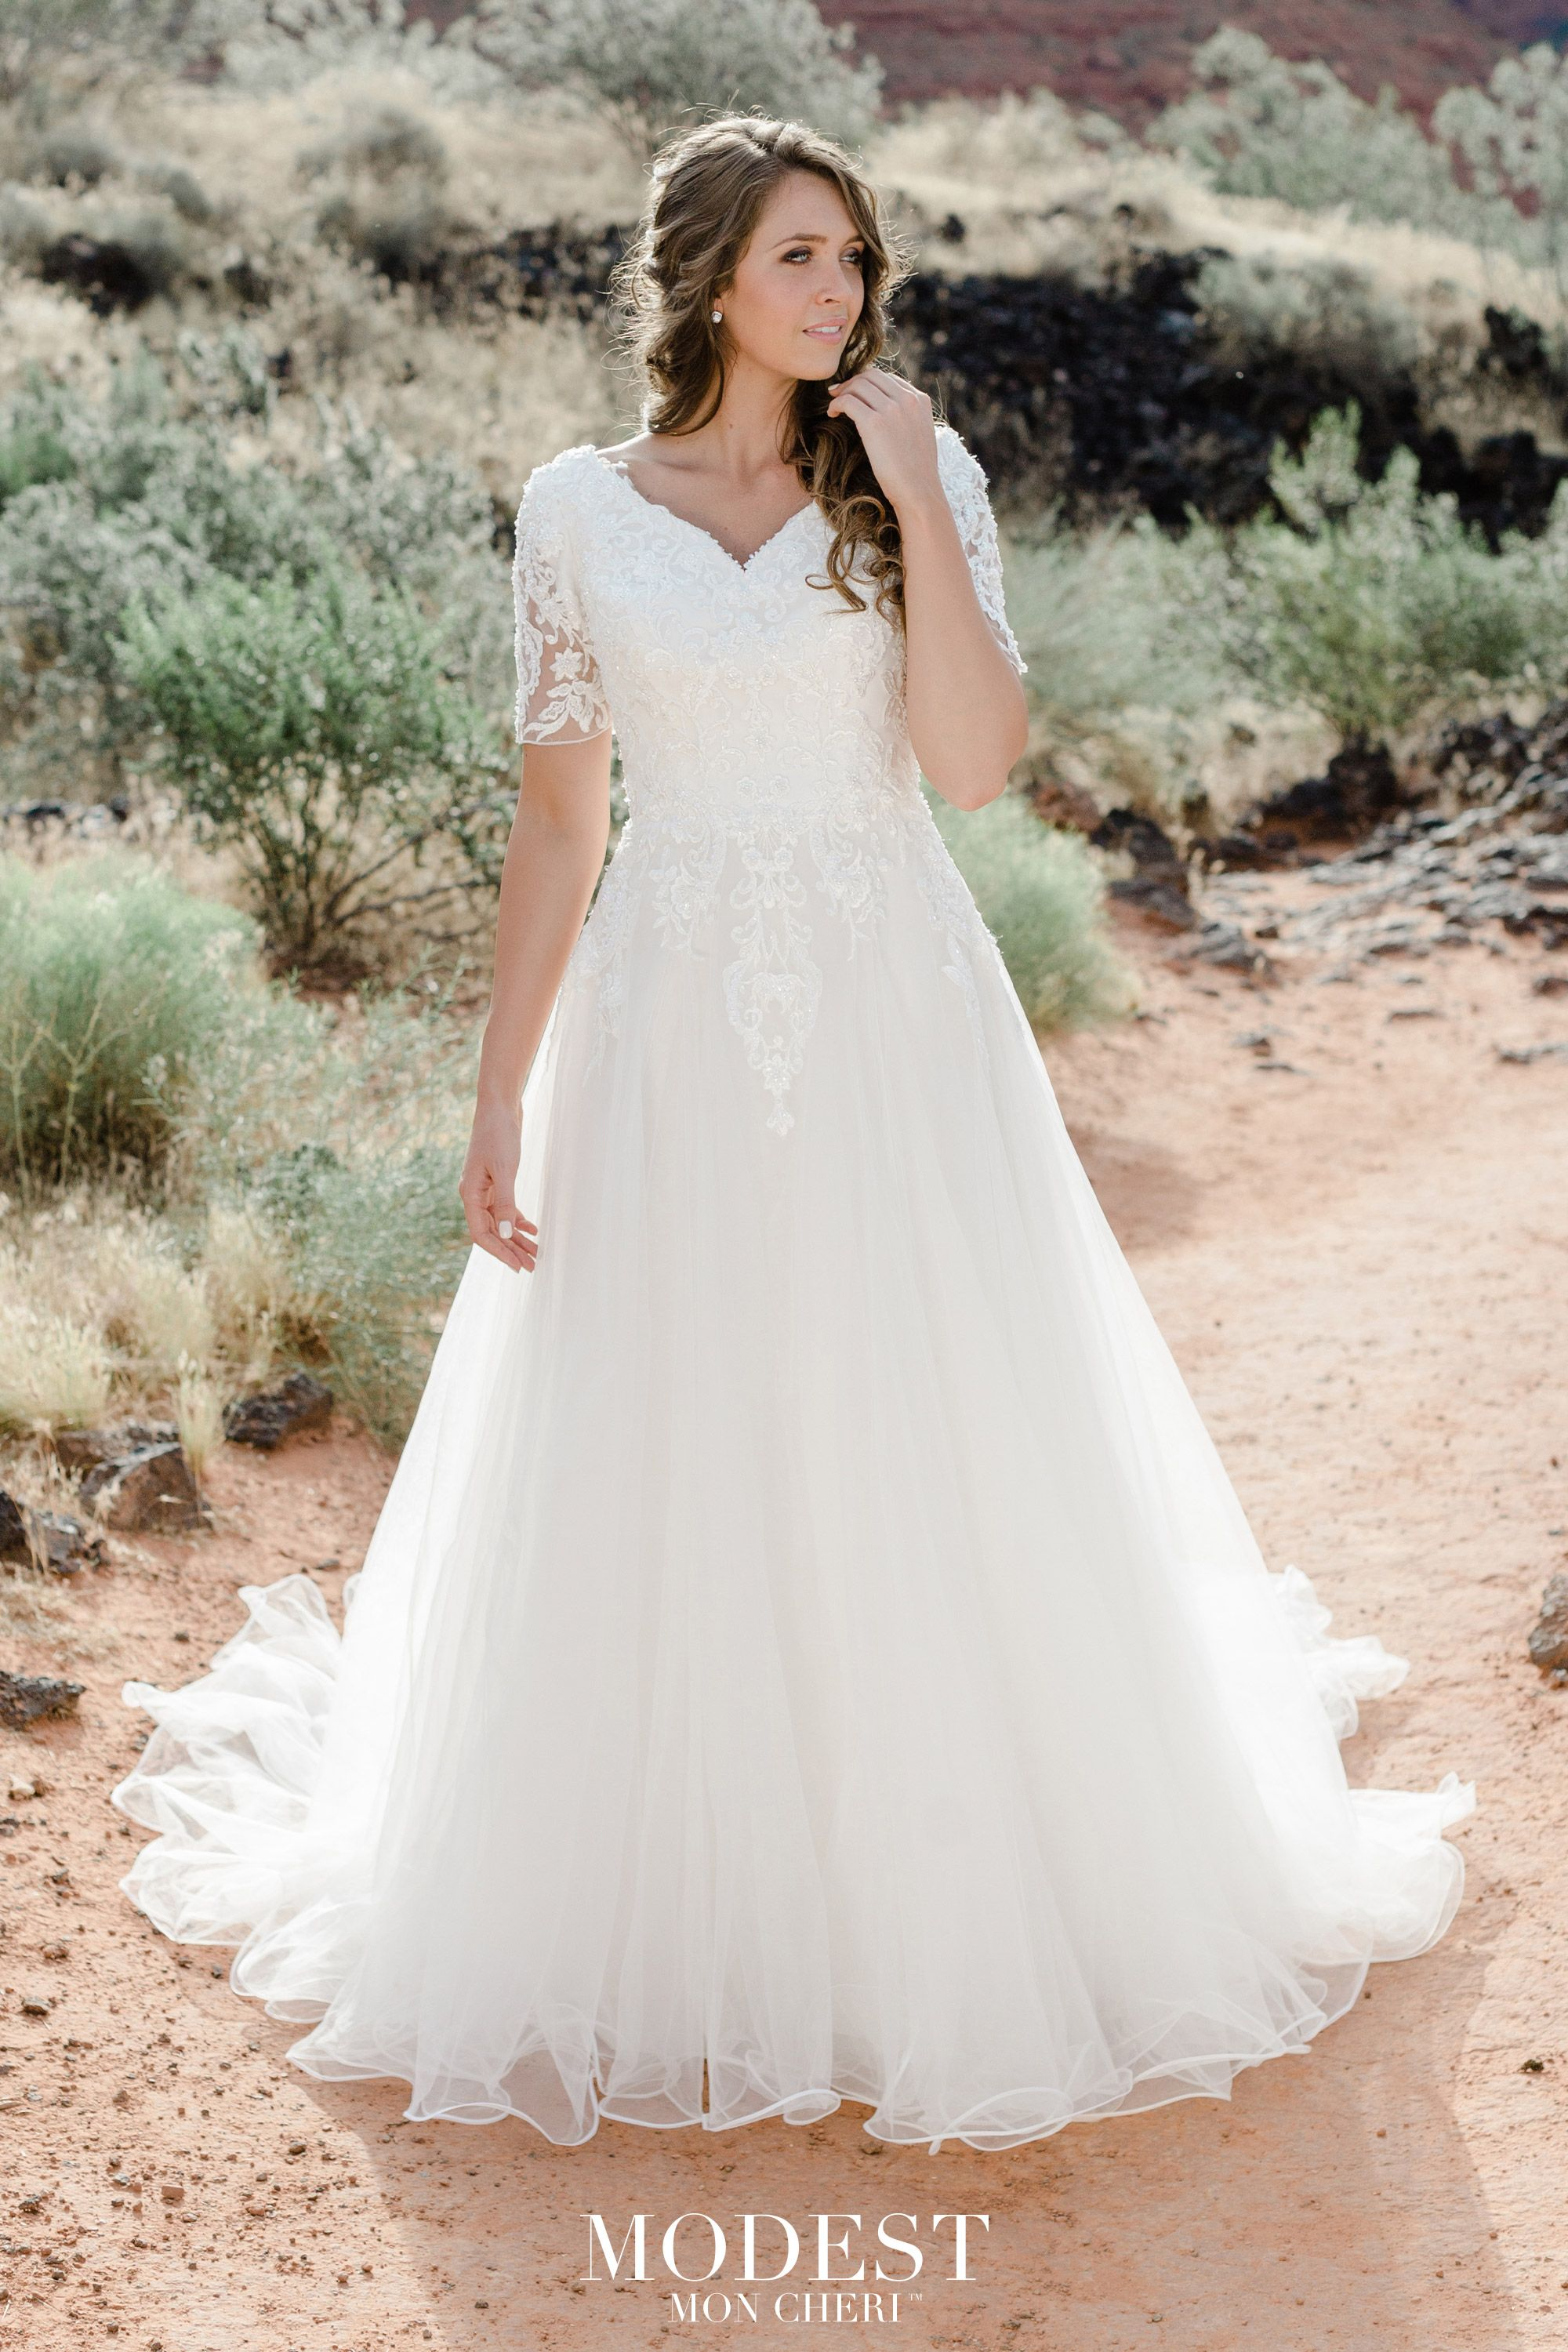 MODEST BY MON CHERI SPRING COLLECTION 2020 TR12029 Ball